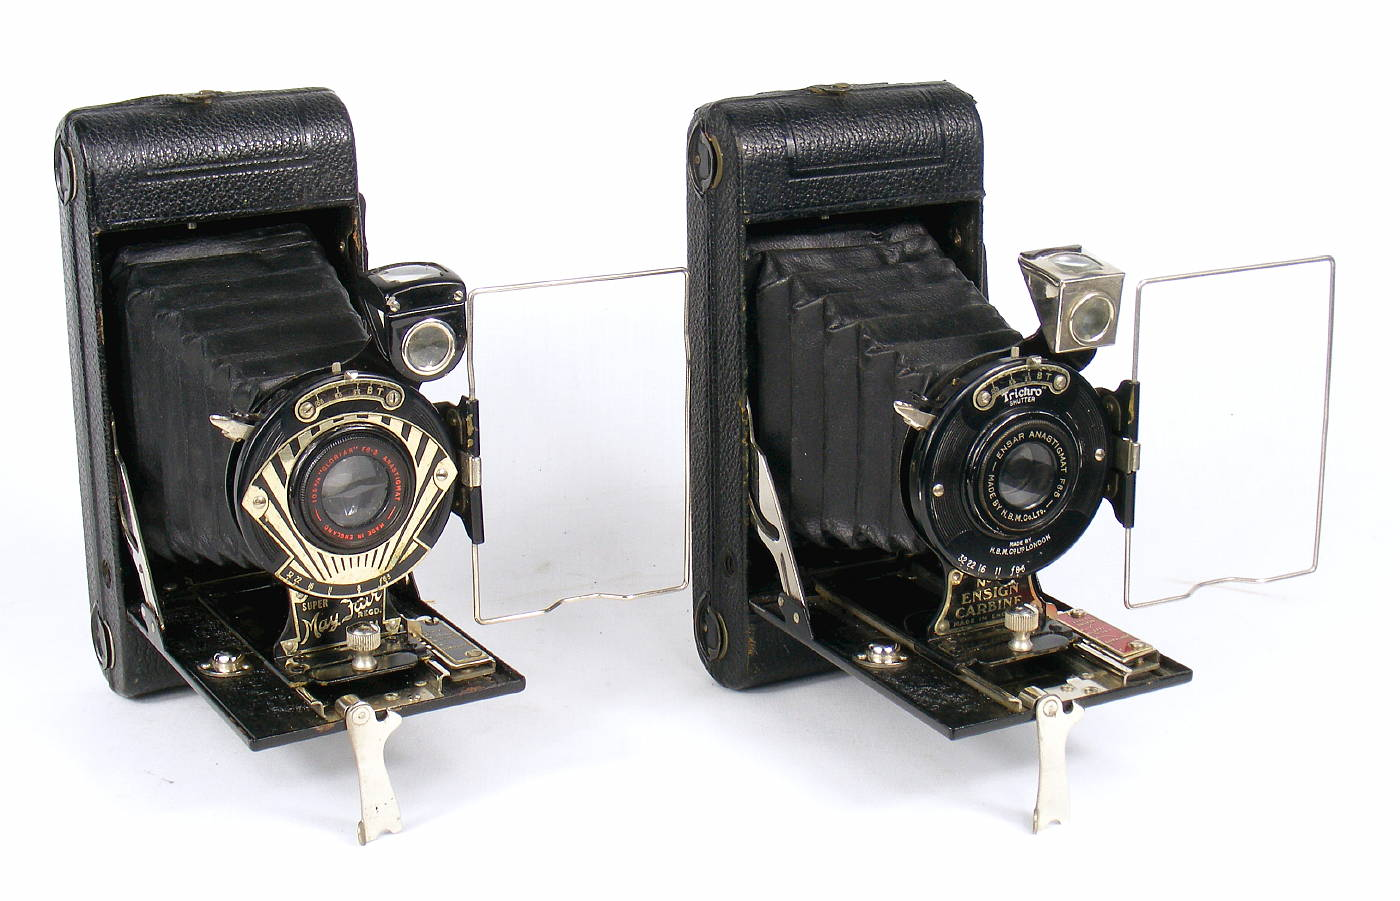 Image of May Fair Folding Cameras